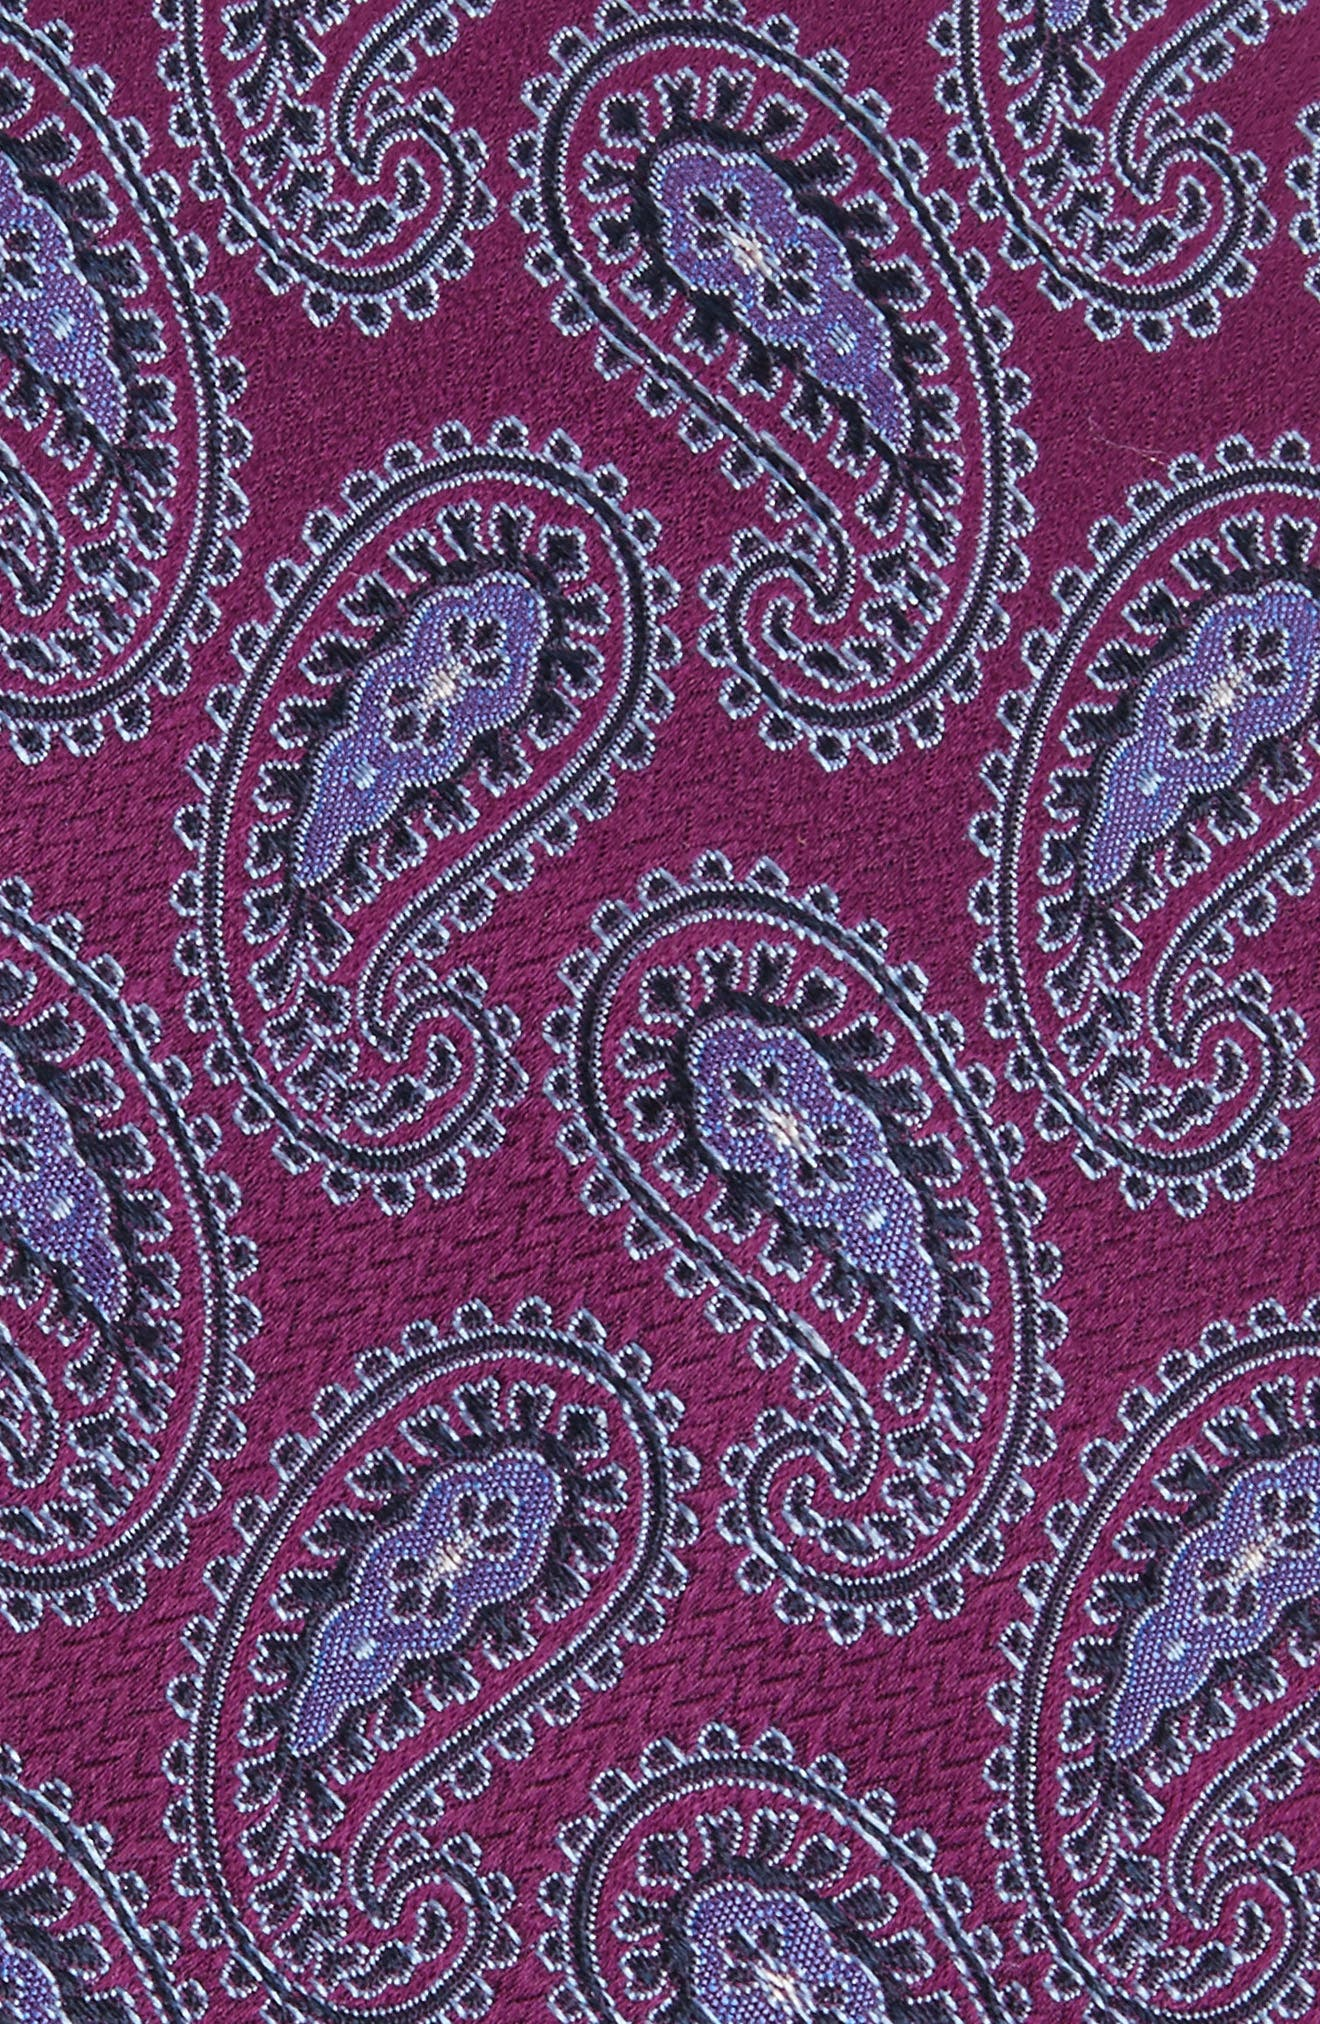 Provincial Pines Paisley Silk Tie,                             Alternate thumbnail 4, color,